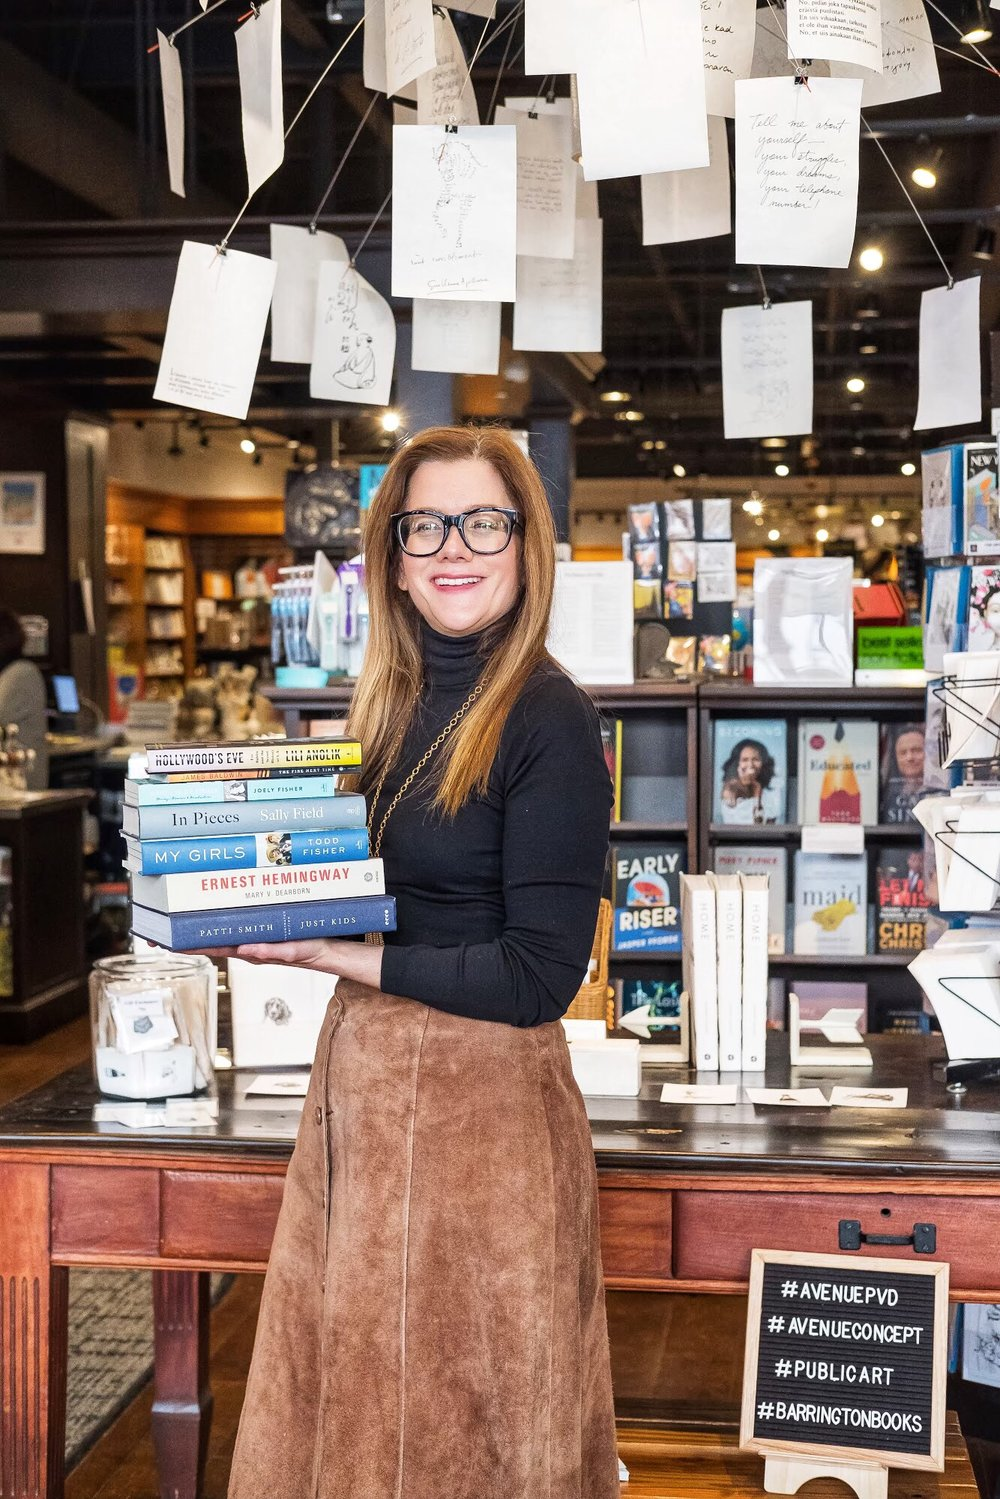 All Photos of Patty J at   Barrington Books Retold   by   Stacey Doyle Photography